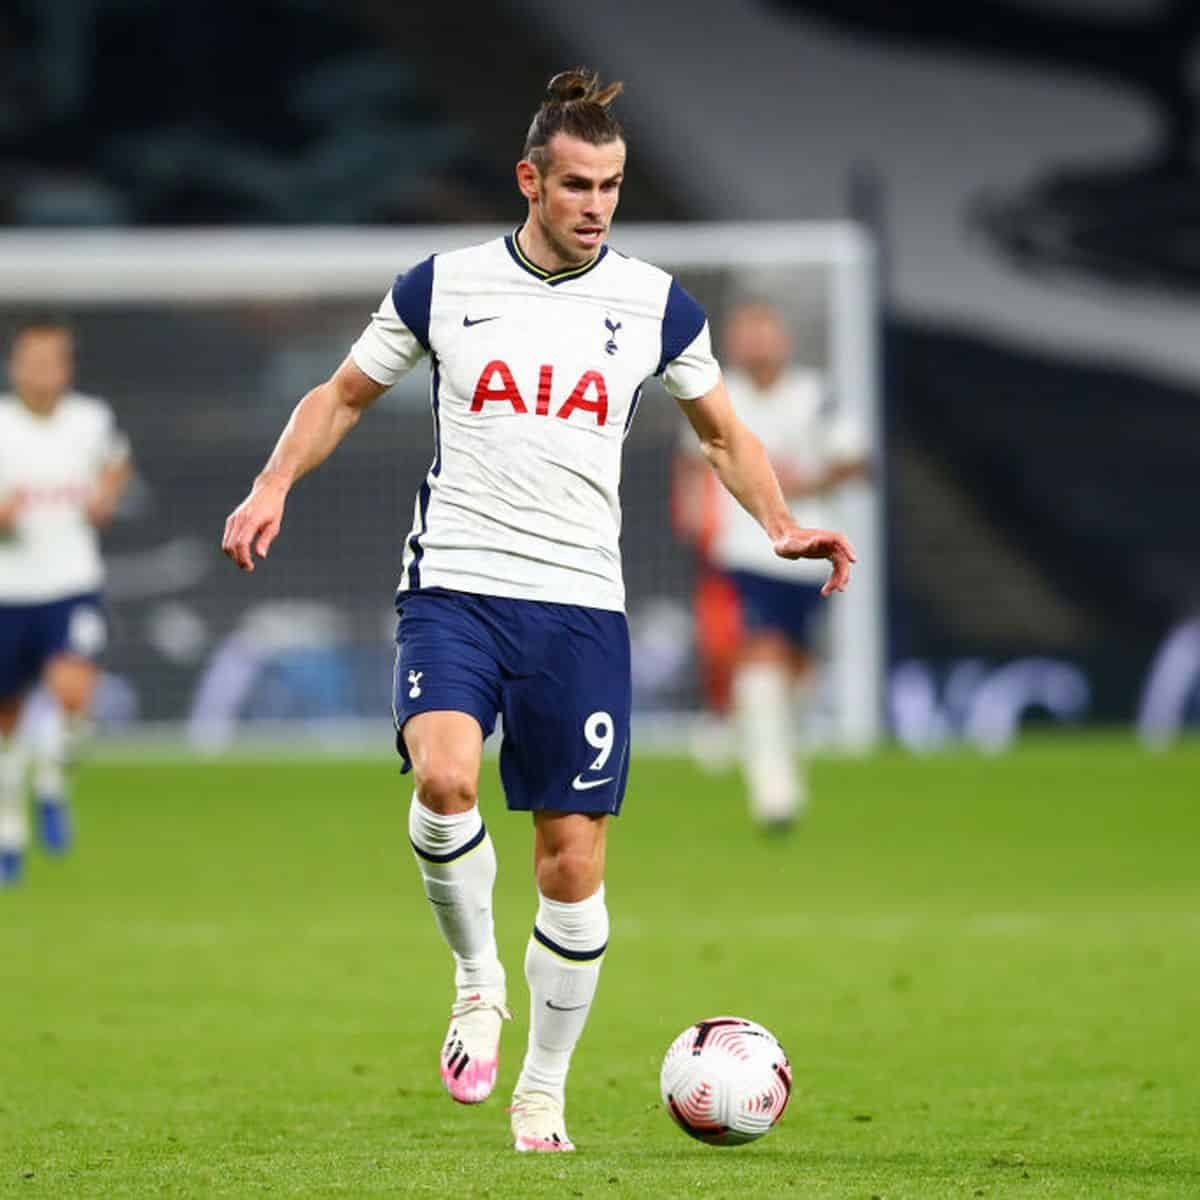 Gareth Bale on winning Spurs performance: This is mini preseason for me